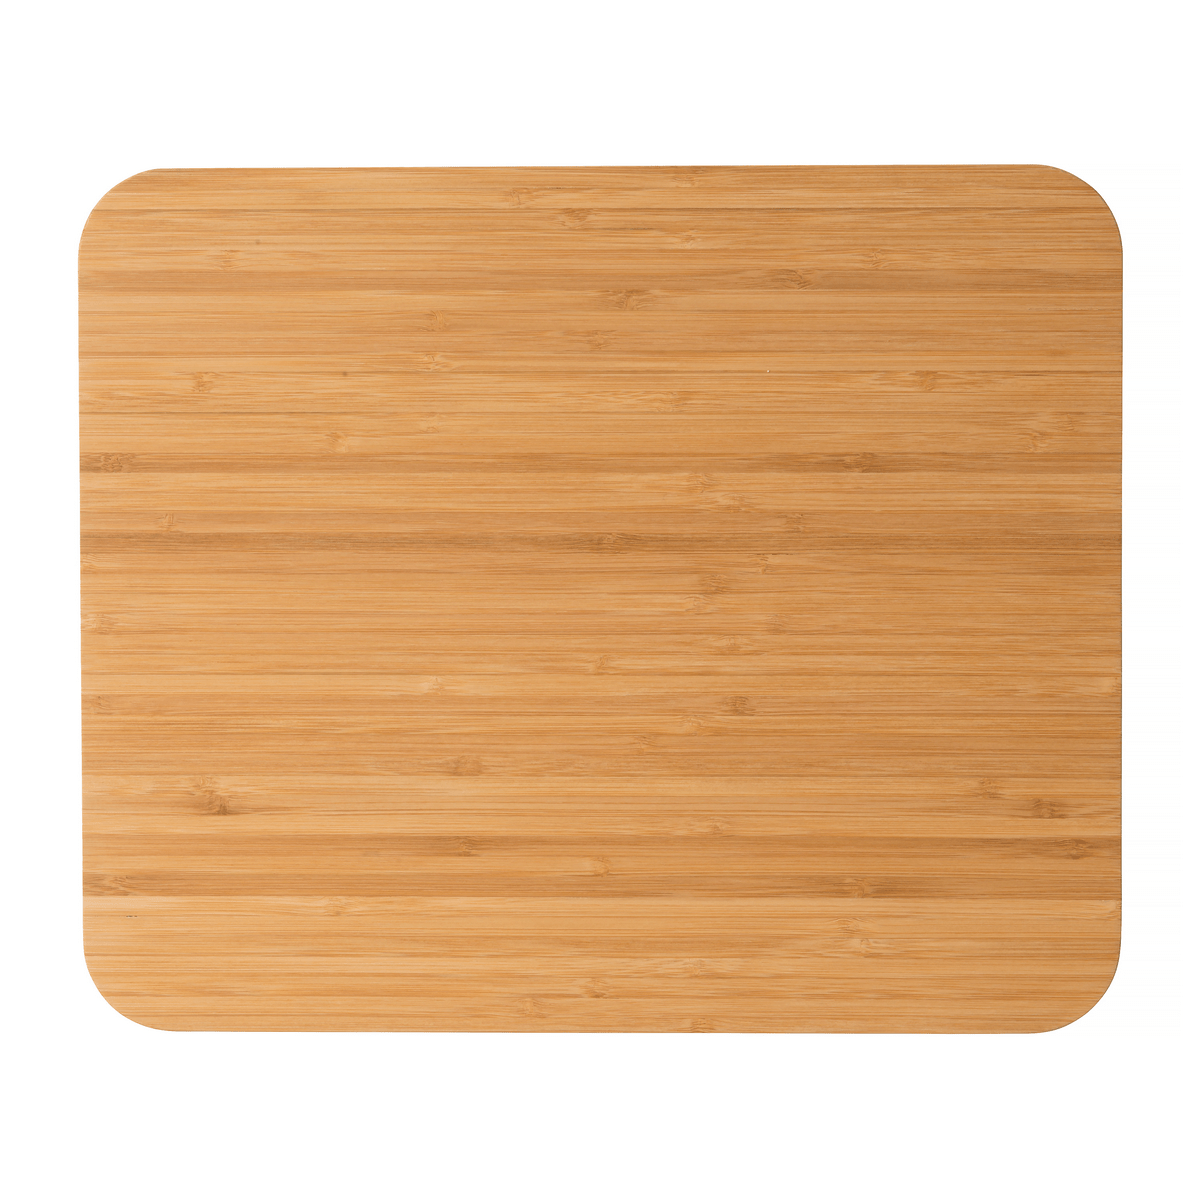 Plastic Cutting Board Countertop Multifunctional Two Sided Cutting Board Ron Nova Vida